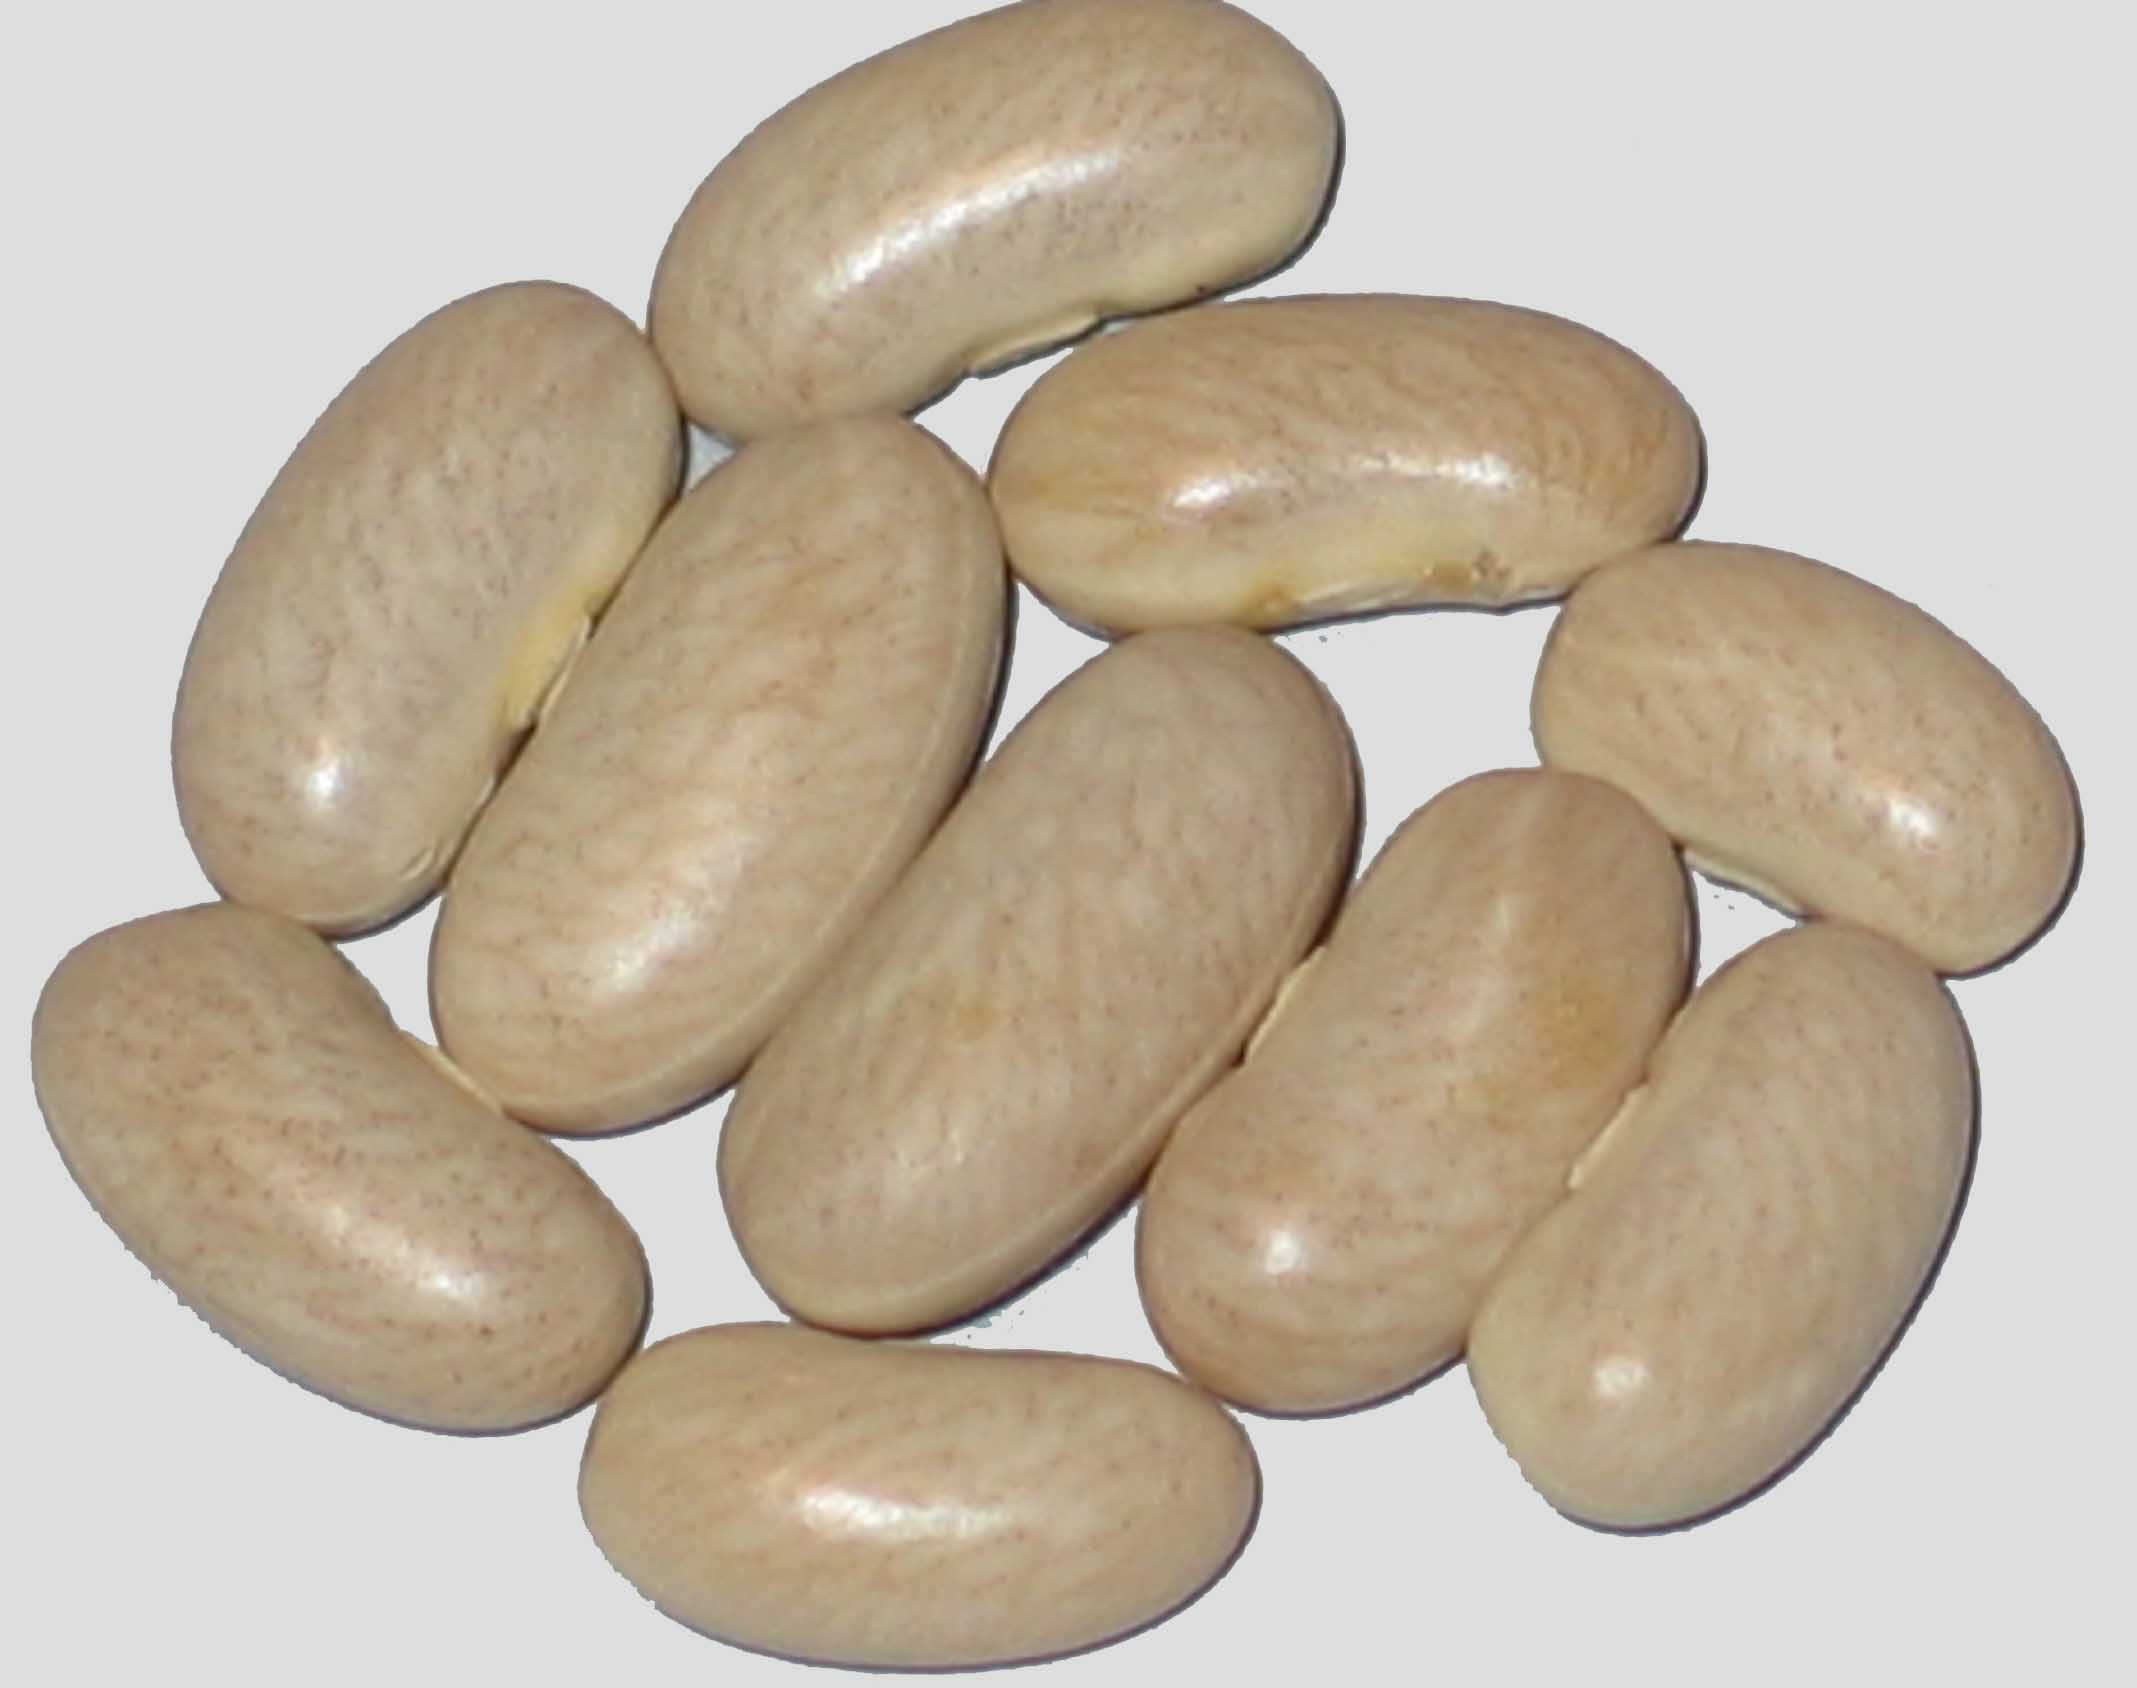 image of College Supreme beans